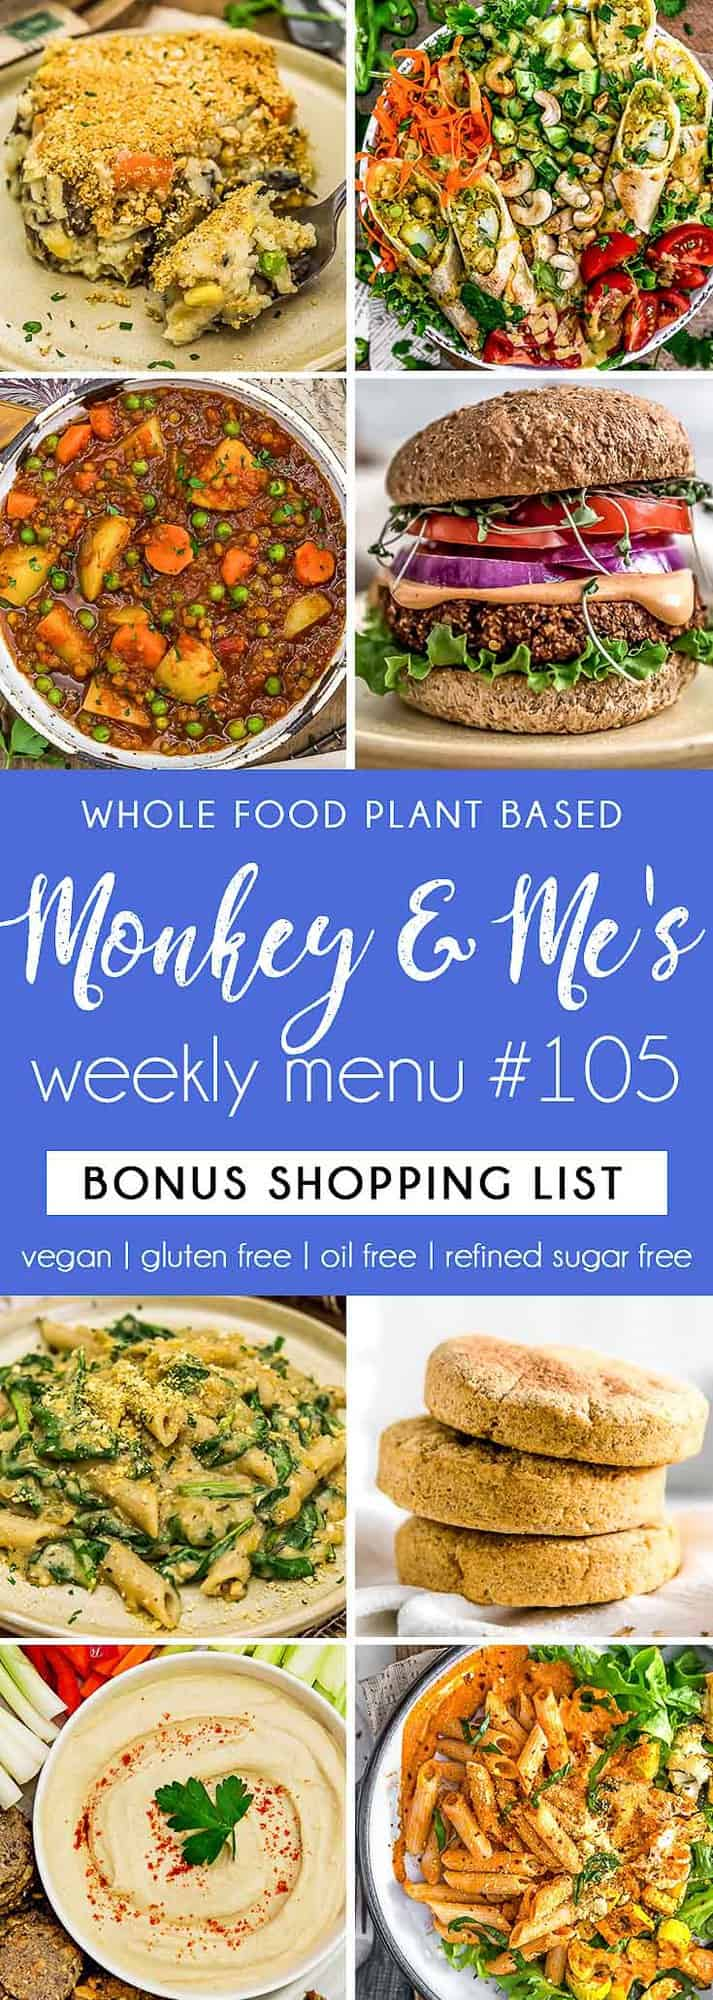 Monkey and Me's Menu 105 featuring 8 recipes